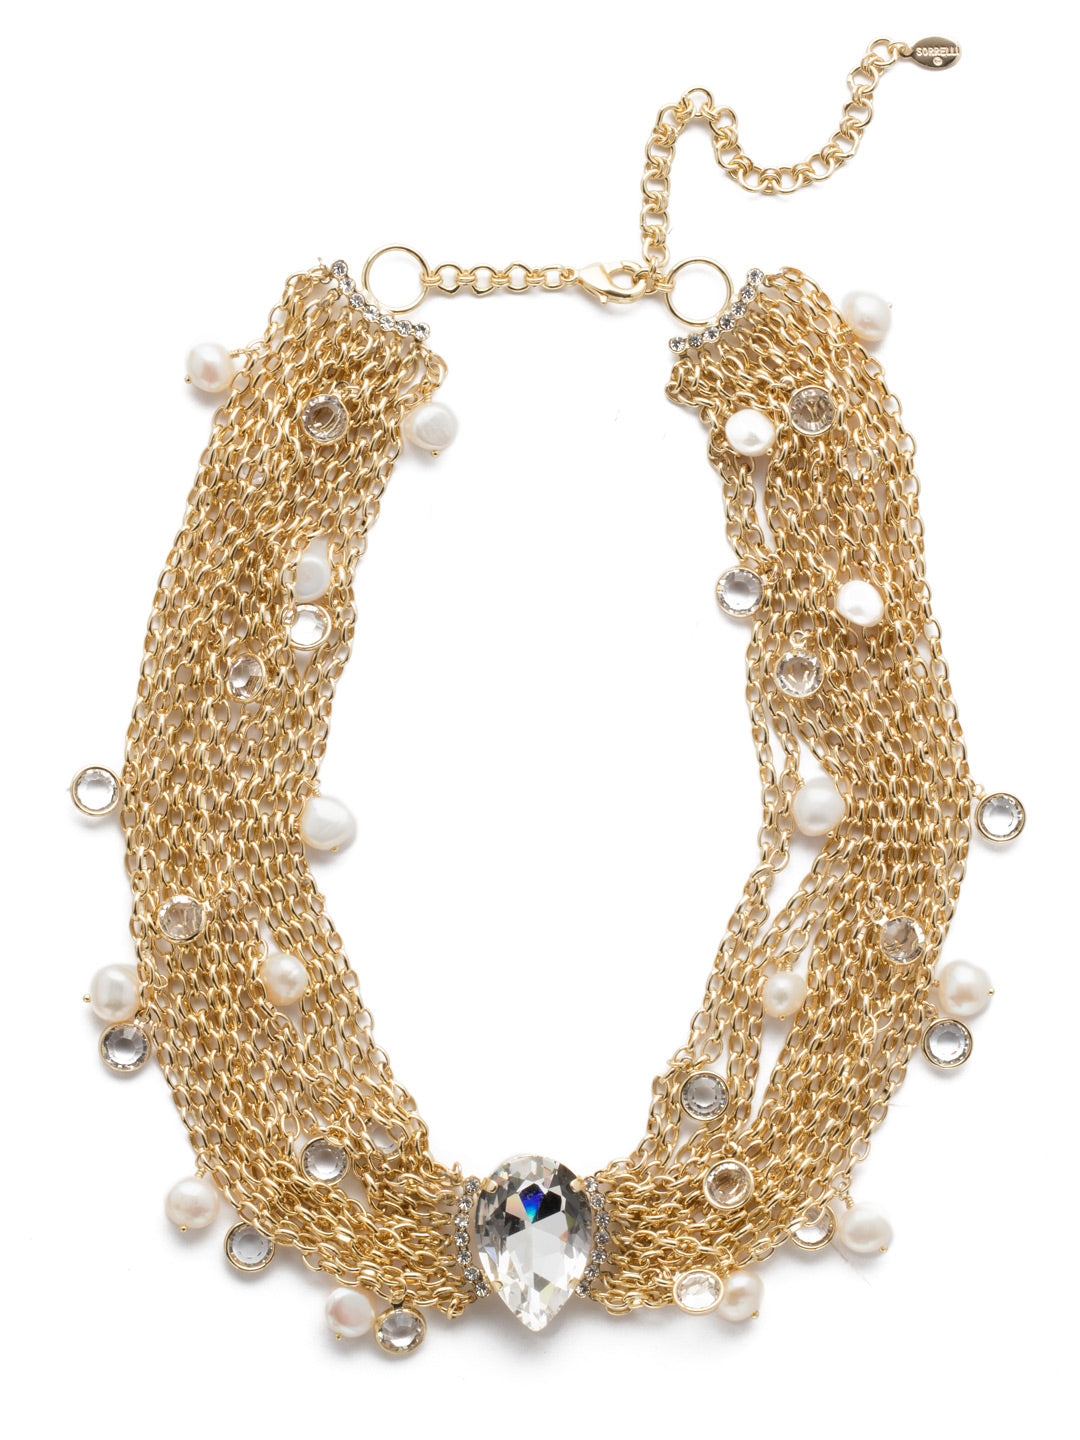 Oceane Classic Statement Necklace - 4NEF3BGMDP